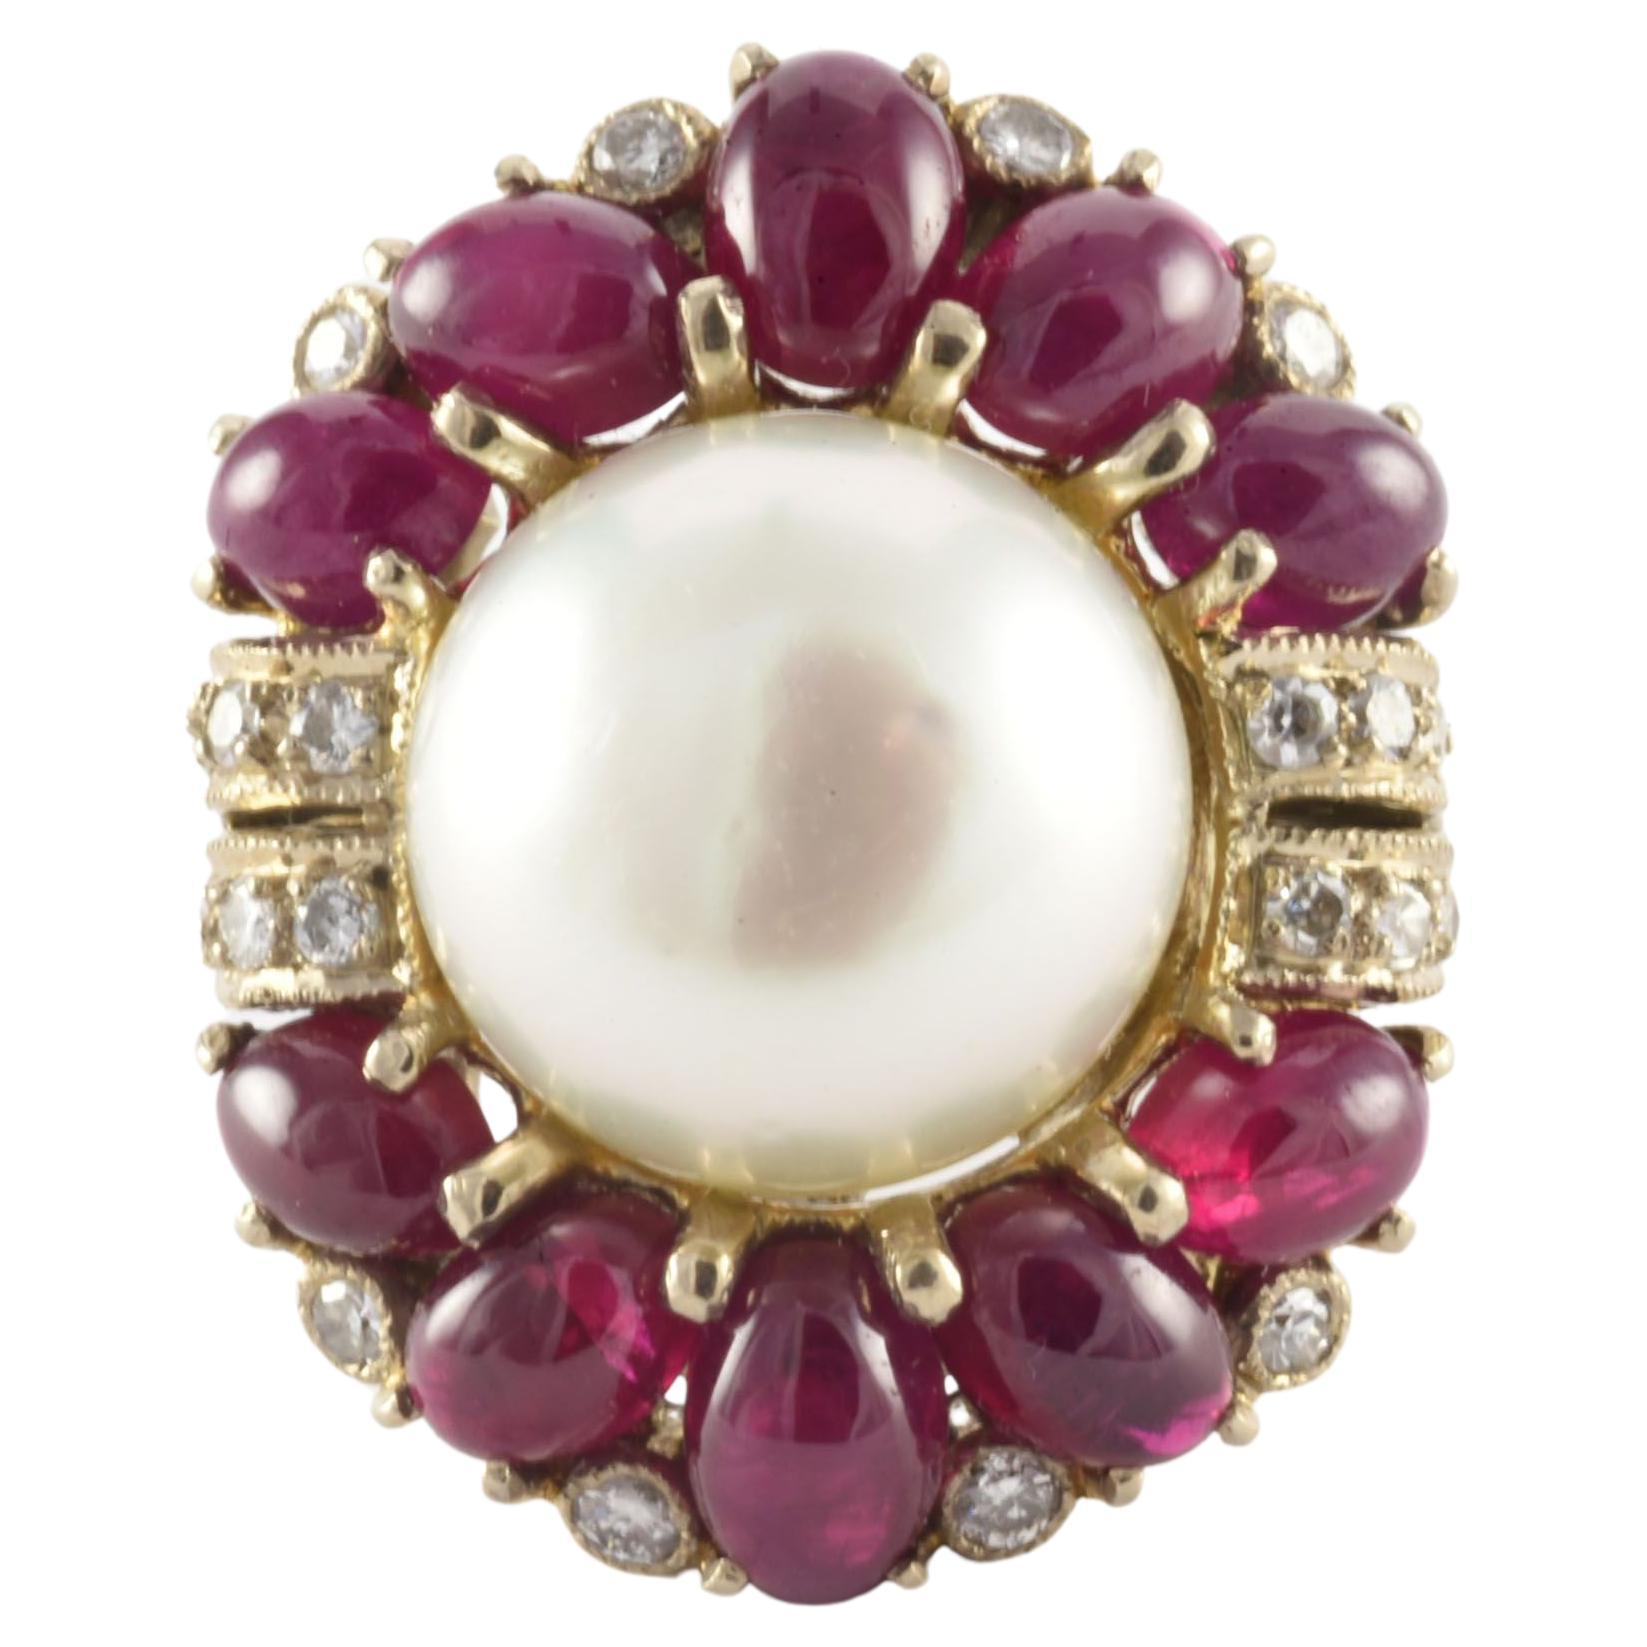 Vintage Mabe Pearl Diamond and Ruby Cocktail Ring